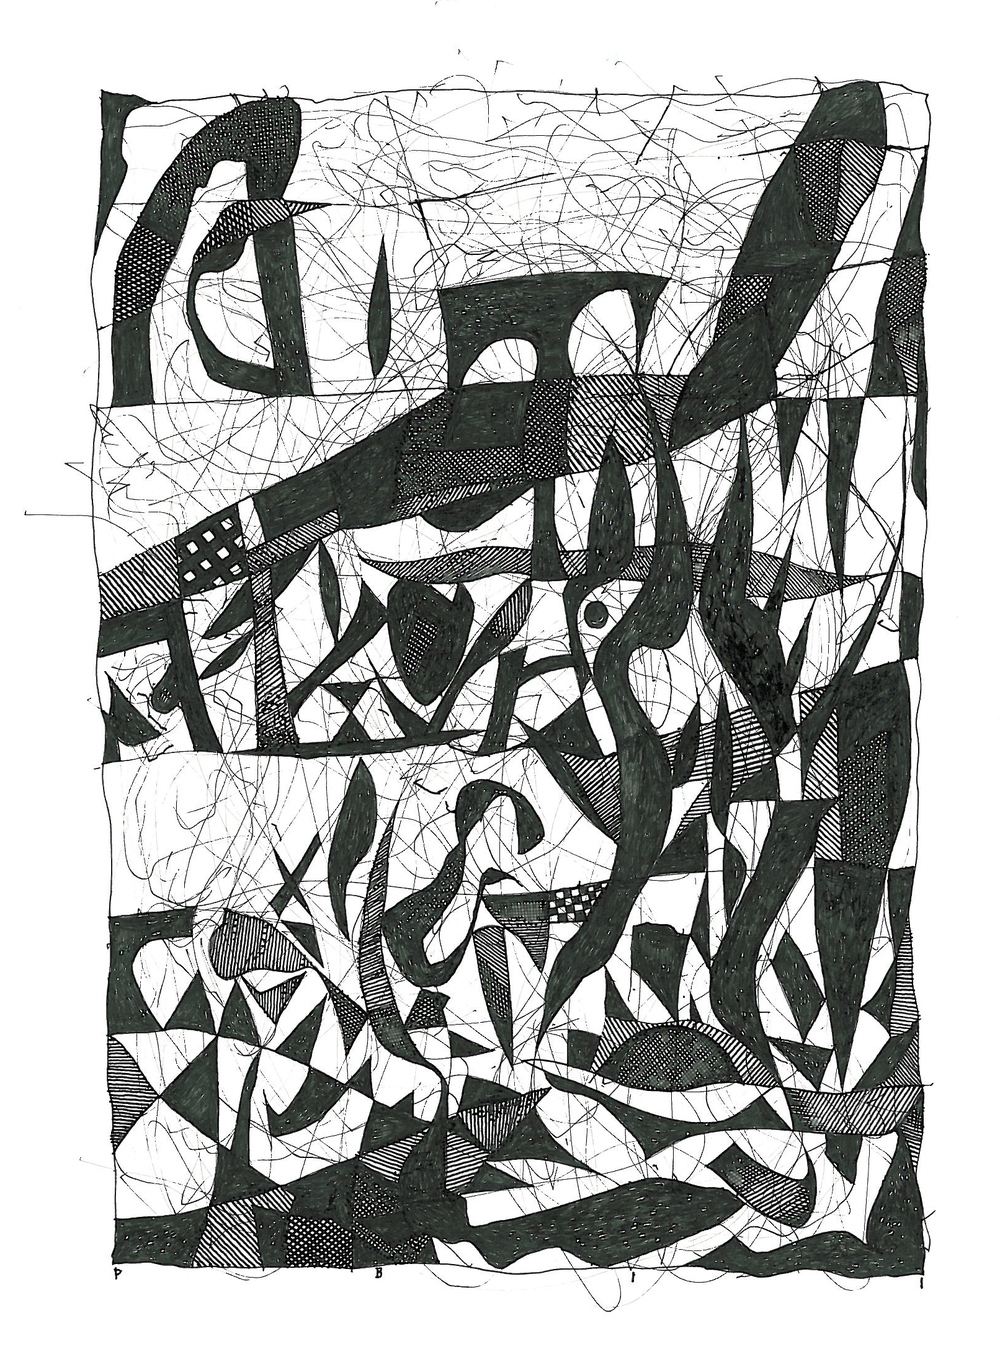 "Pen and Ink - 4.5"" x 6.5"" - 2011"